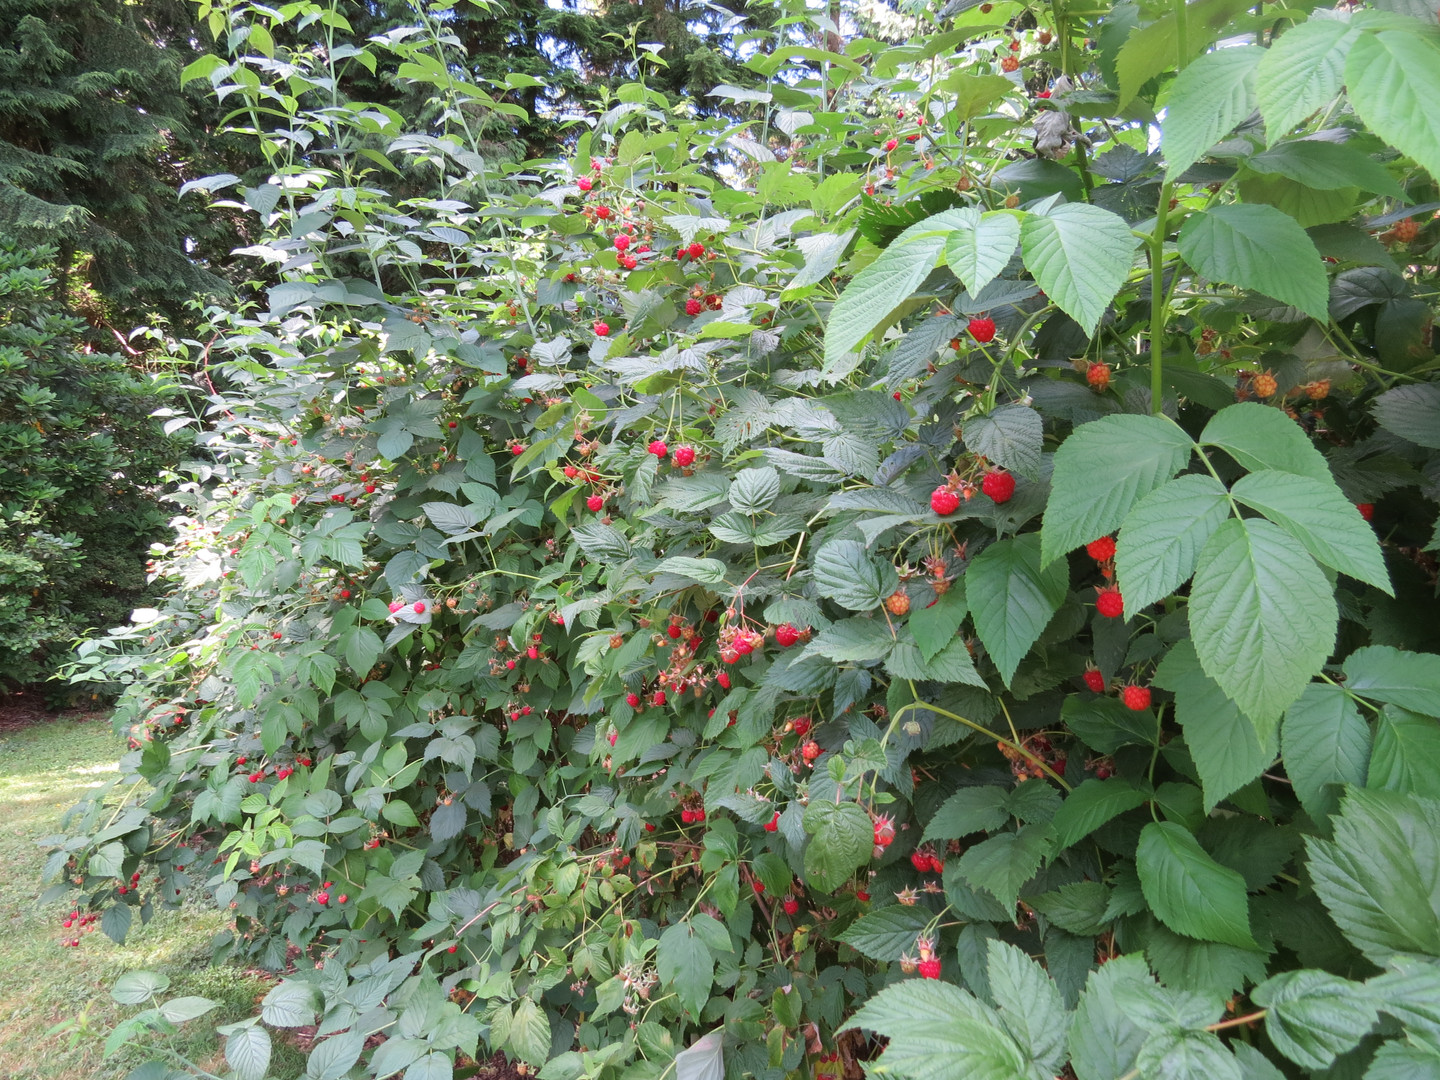 These are prolific berries.